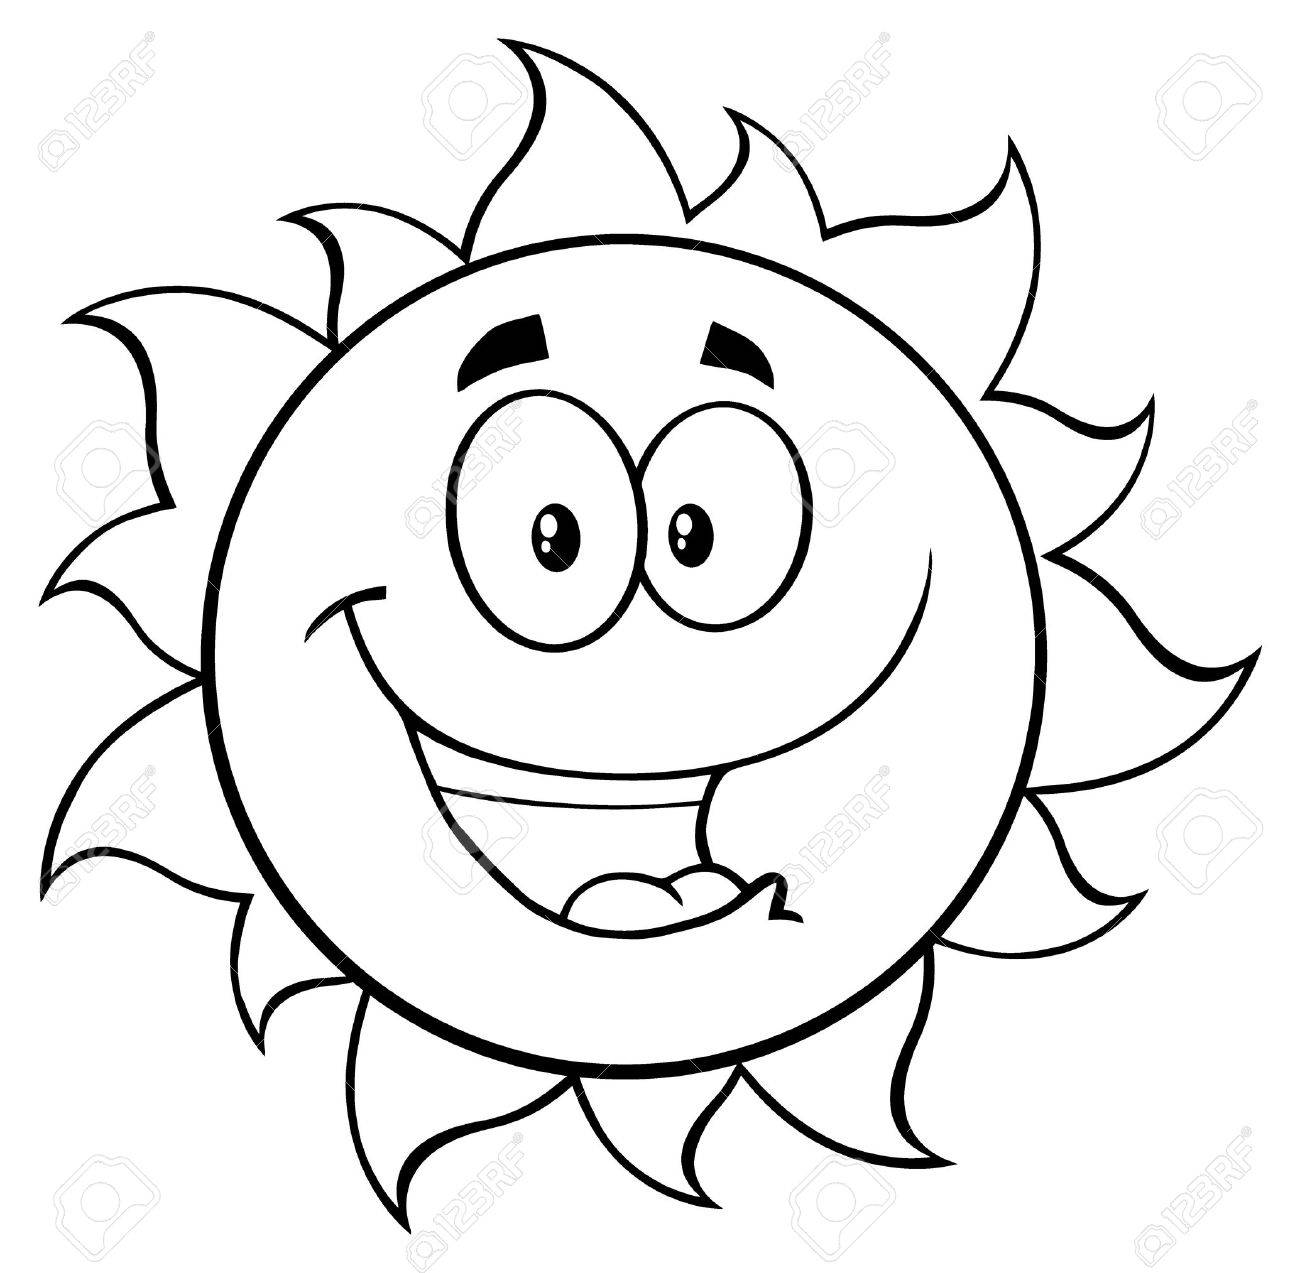 1300x1273 Black And White Happy Sun Cartoon Mascot Character. Illustration